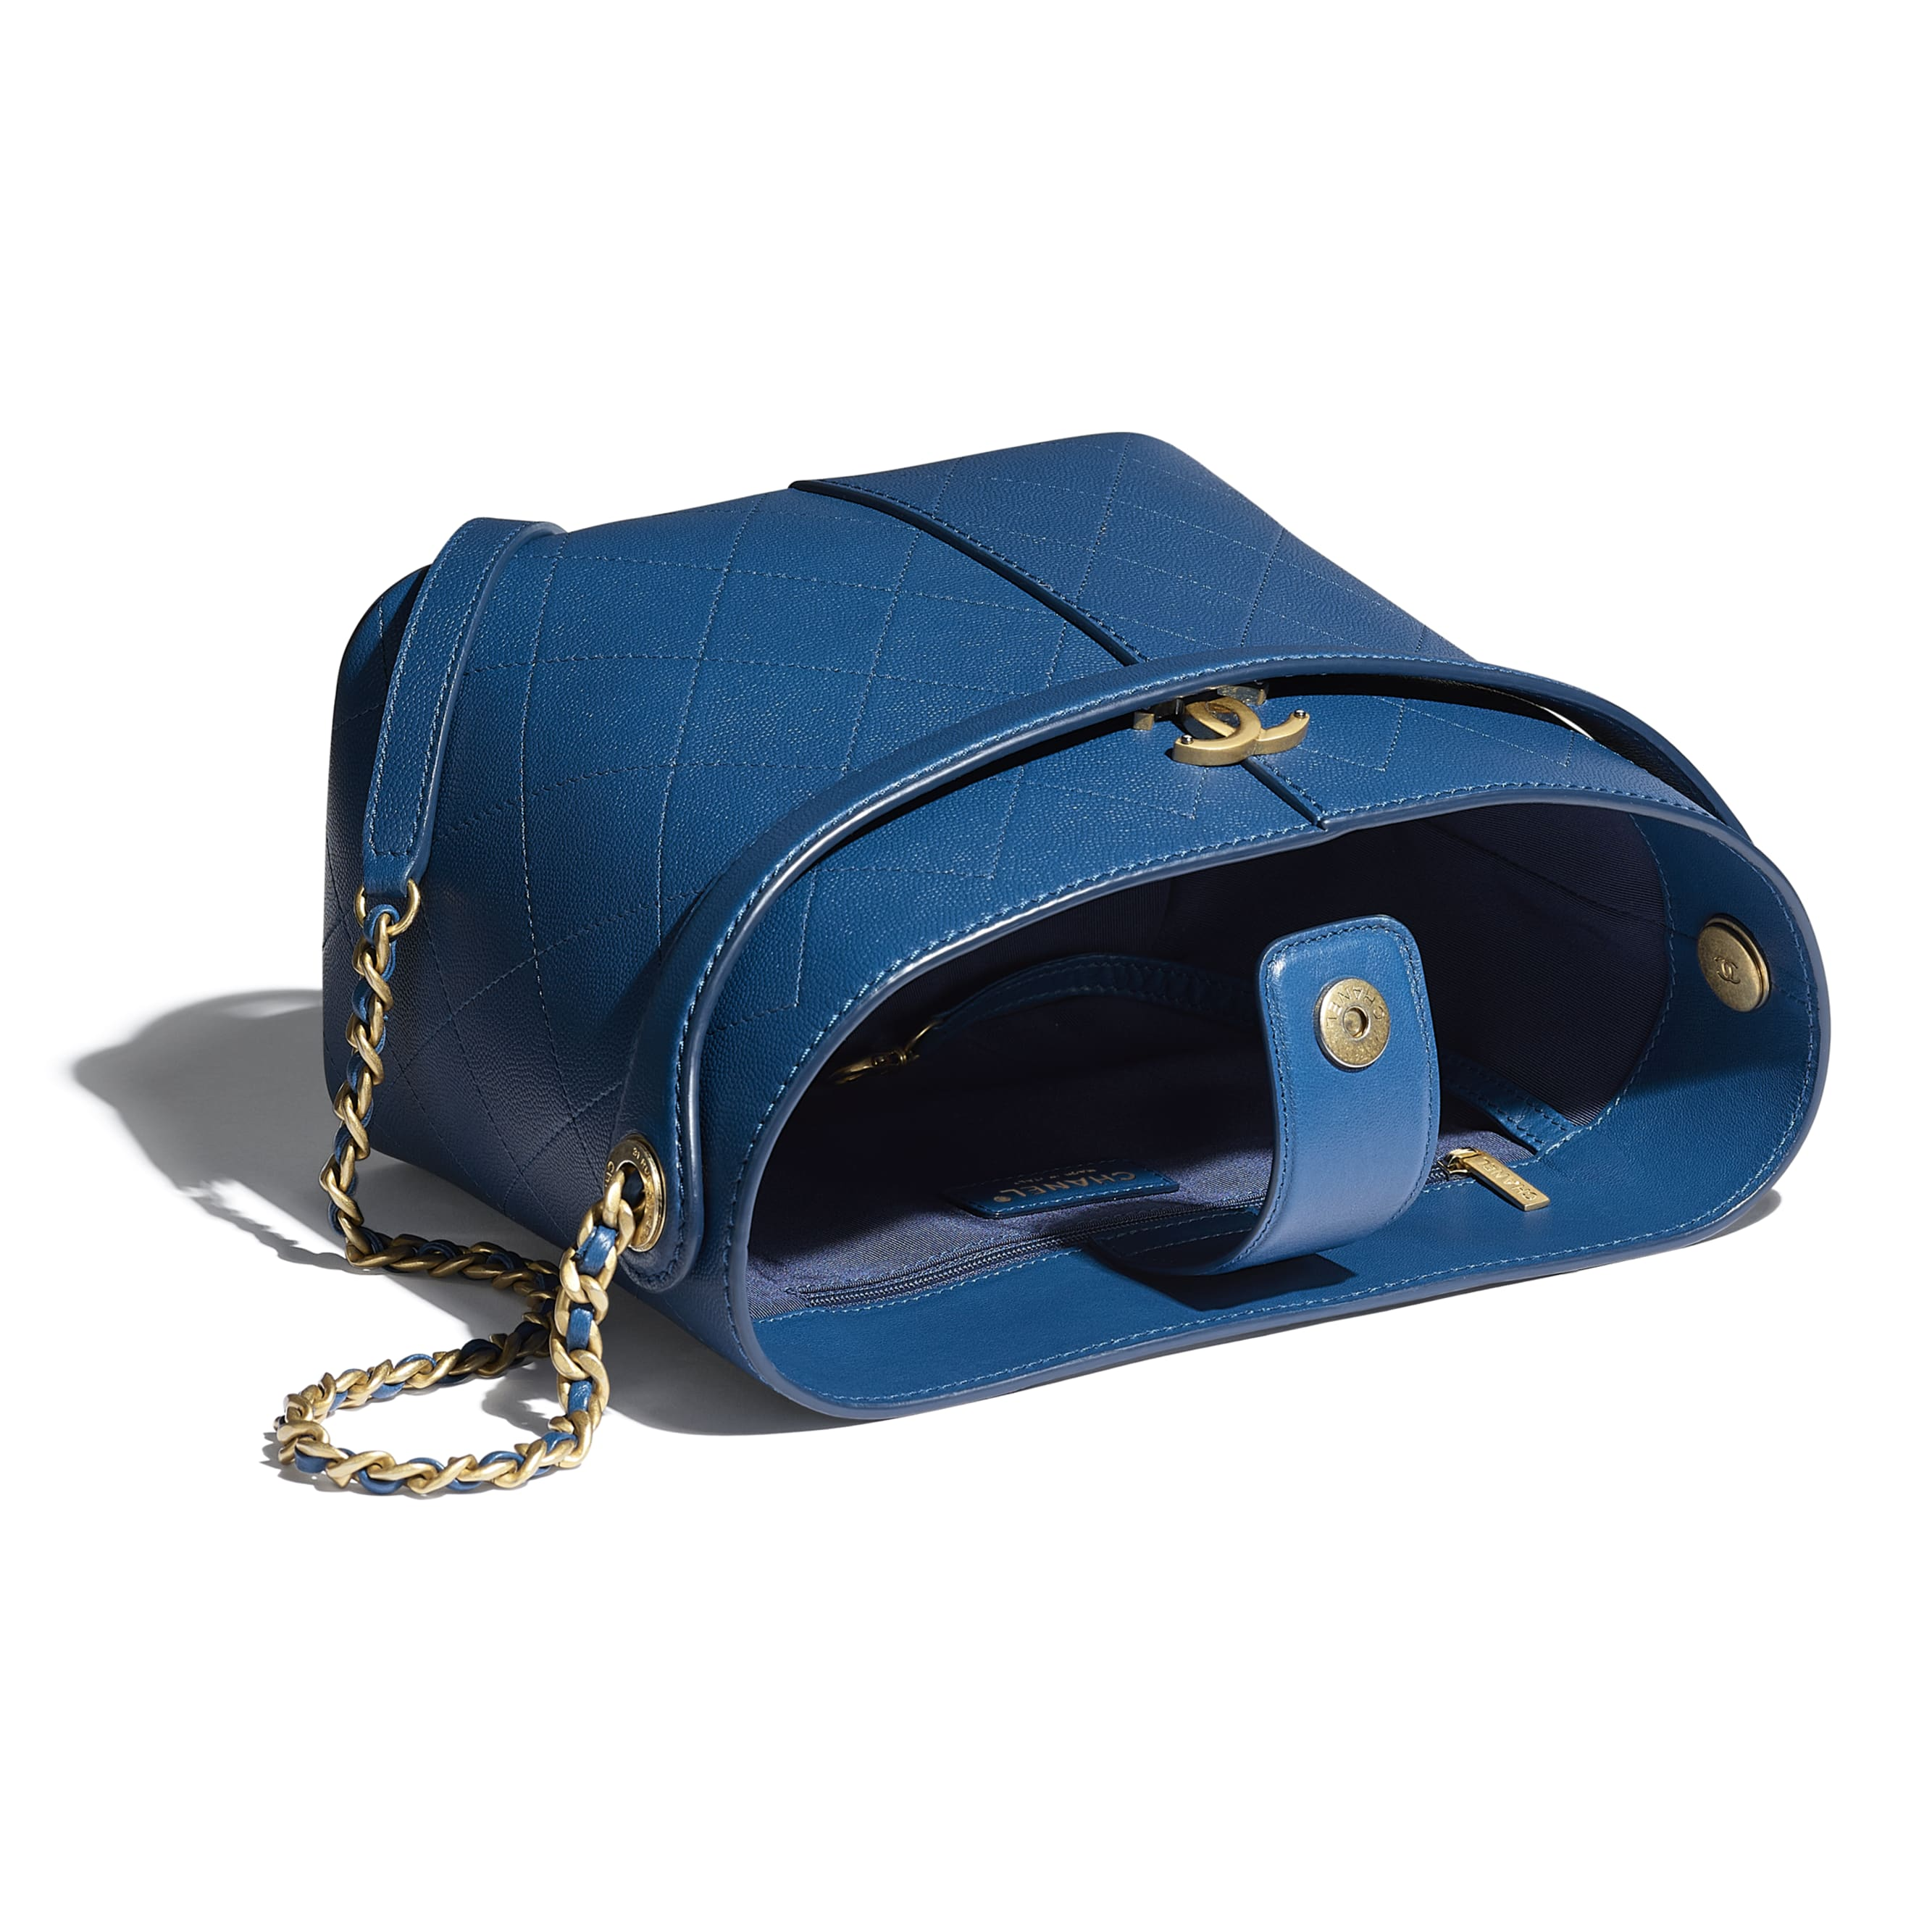 Small Tote - Blue - Grained Lambskin, Smooth Lambskin & Gold-Tone Metal - CHANEL - Other view - see standard sized version